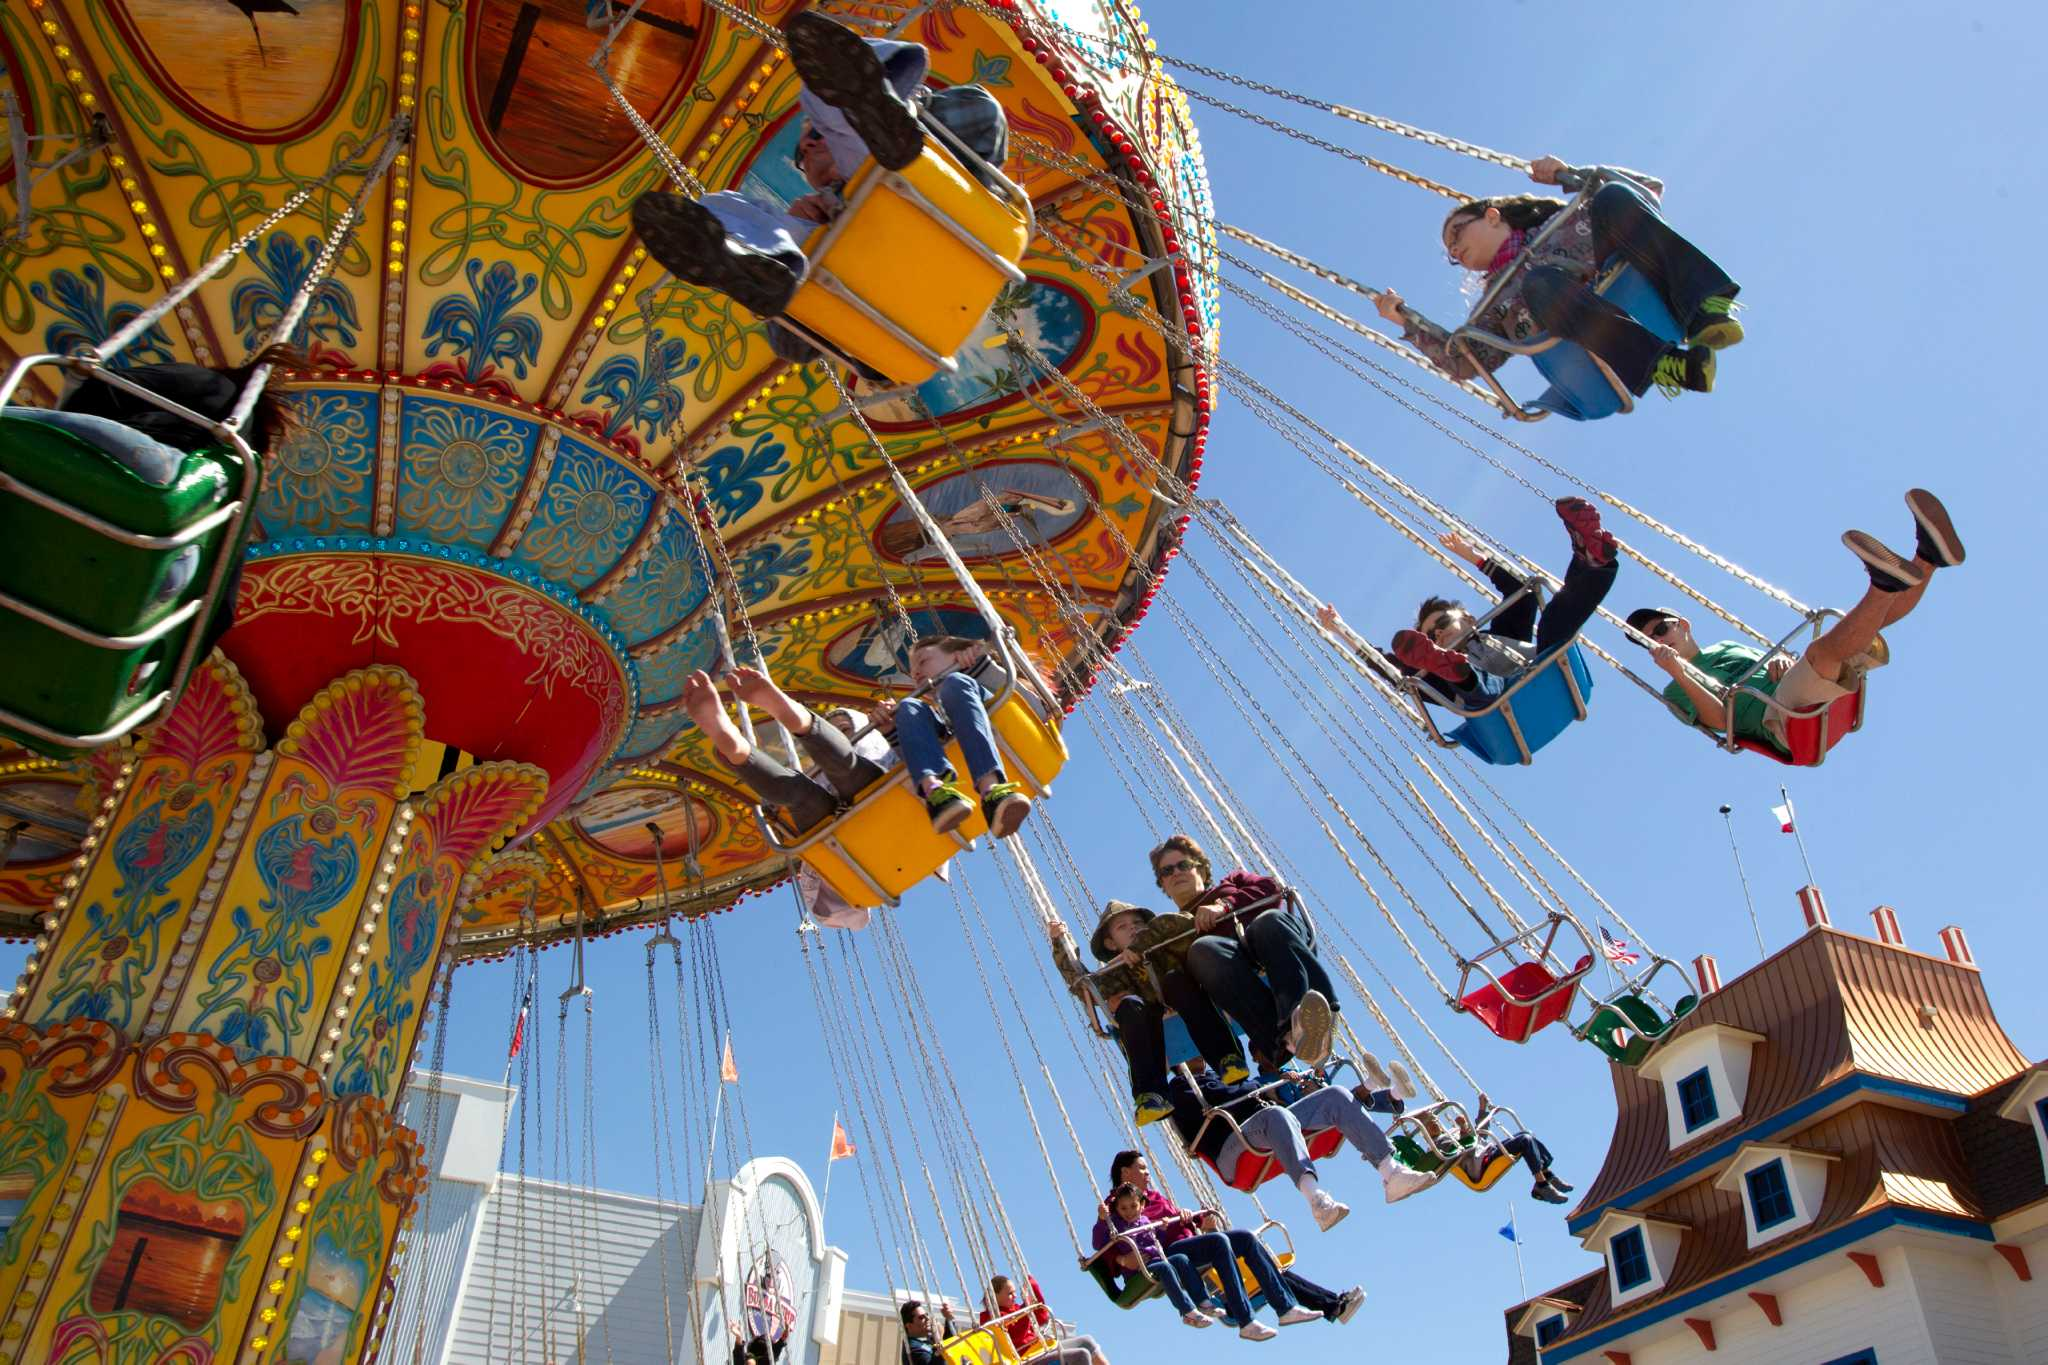 Amusement Parks And Fun Centers Cater To Kids Houston